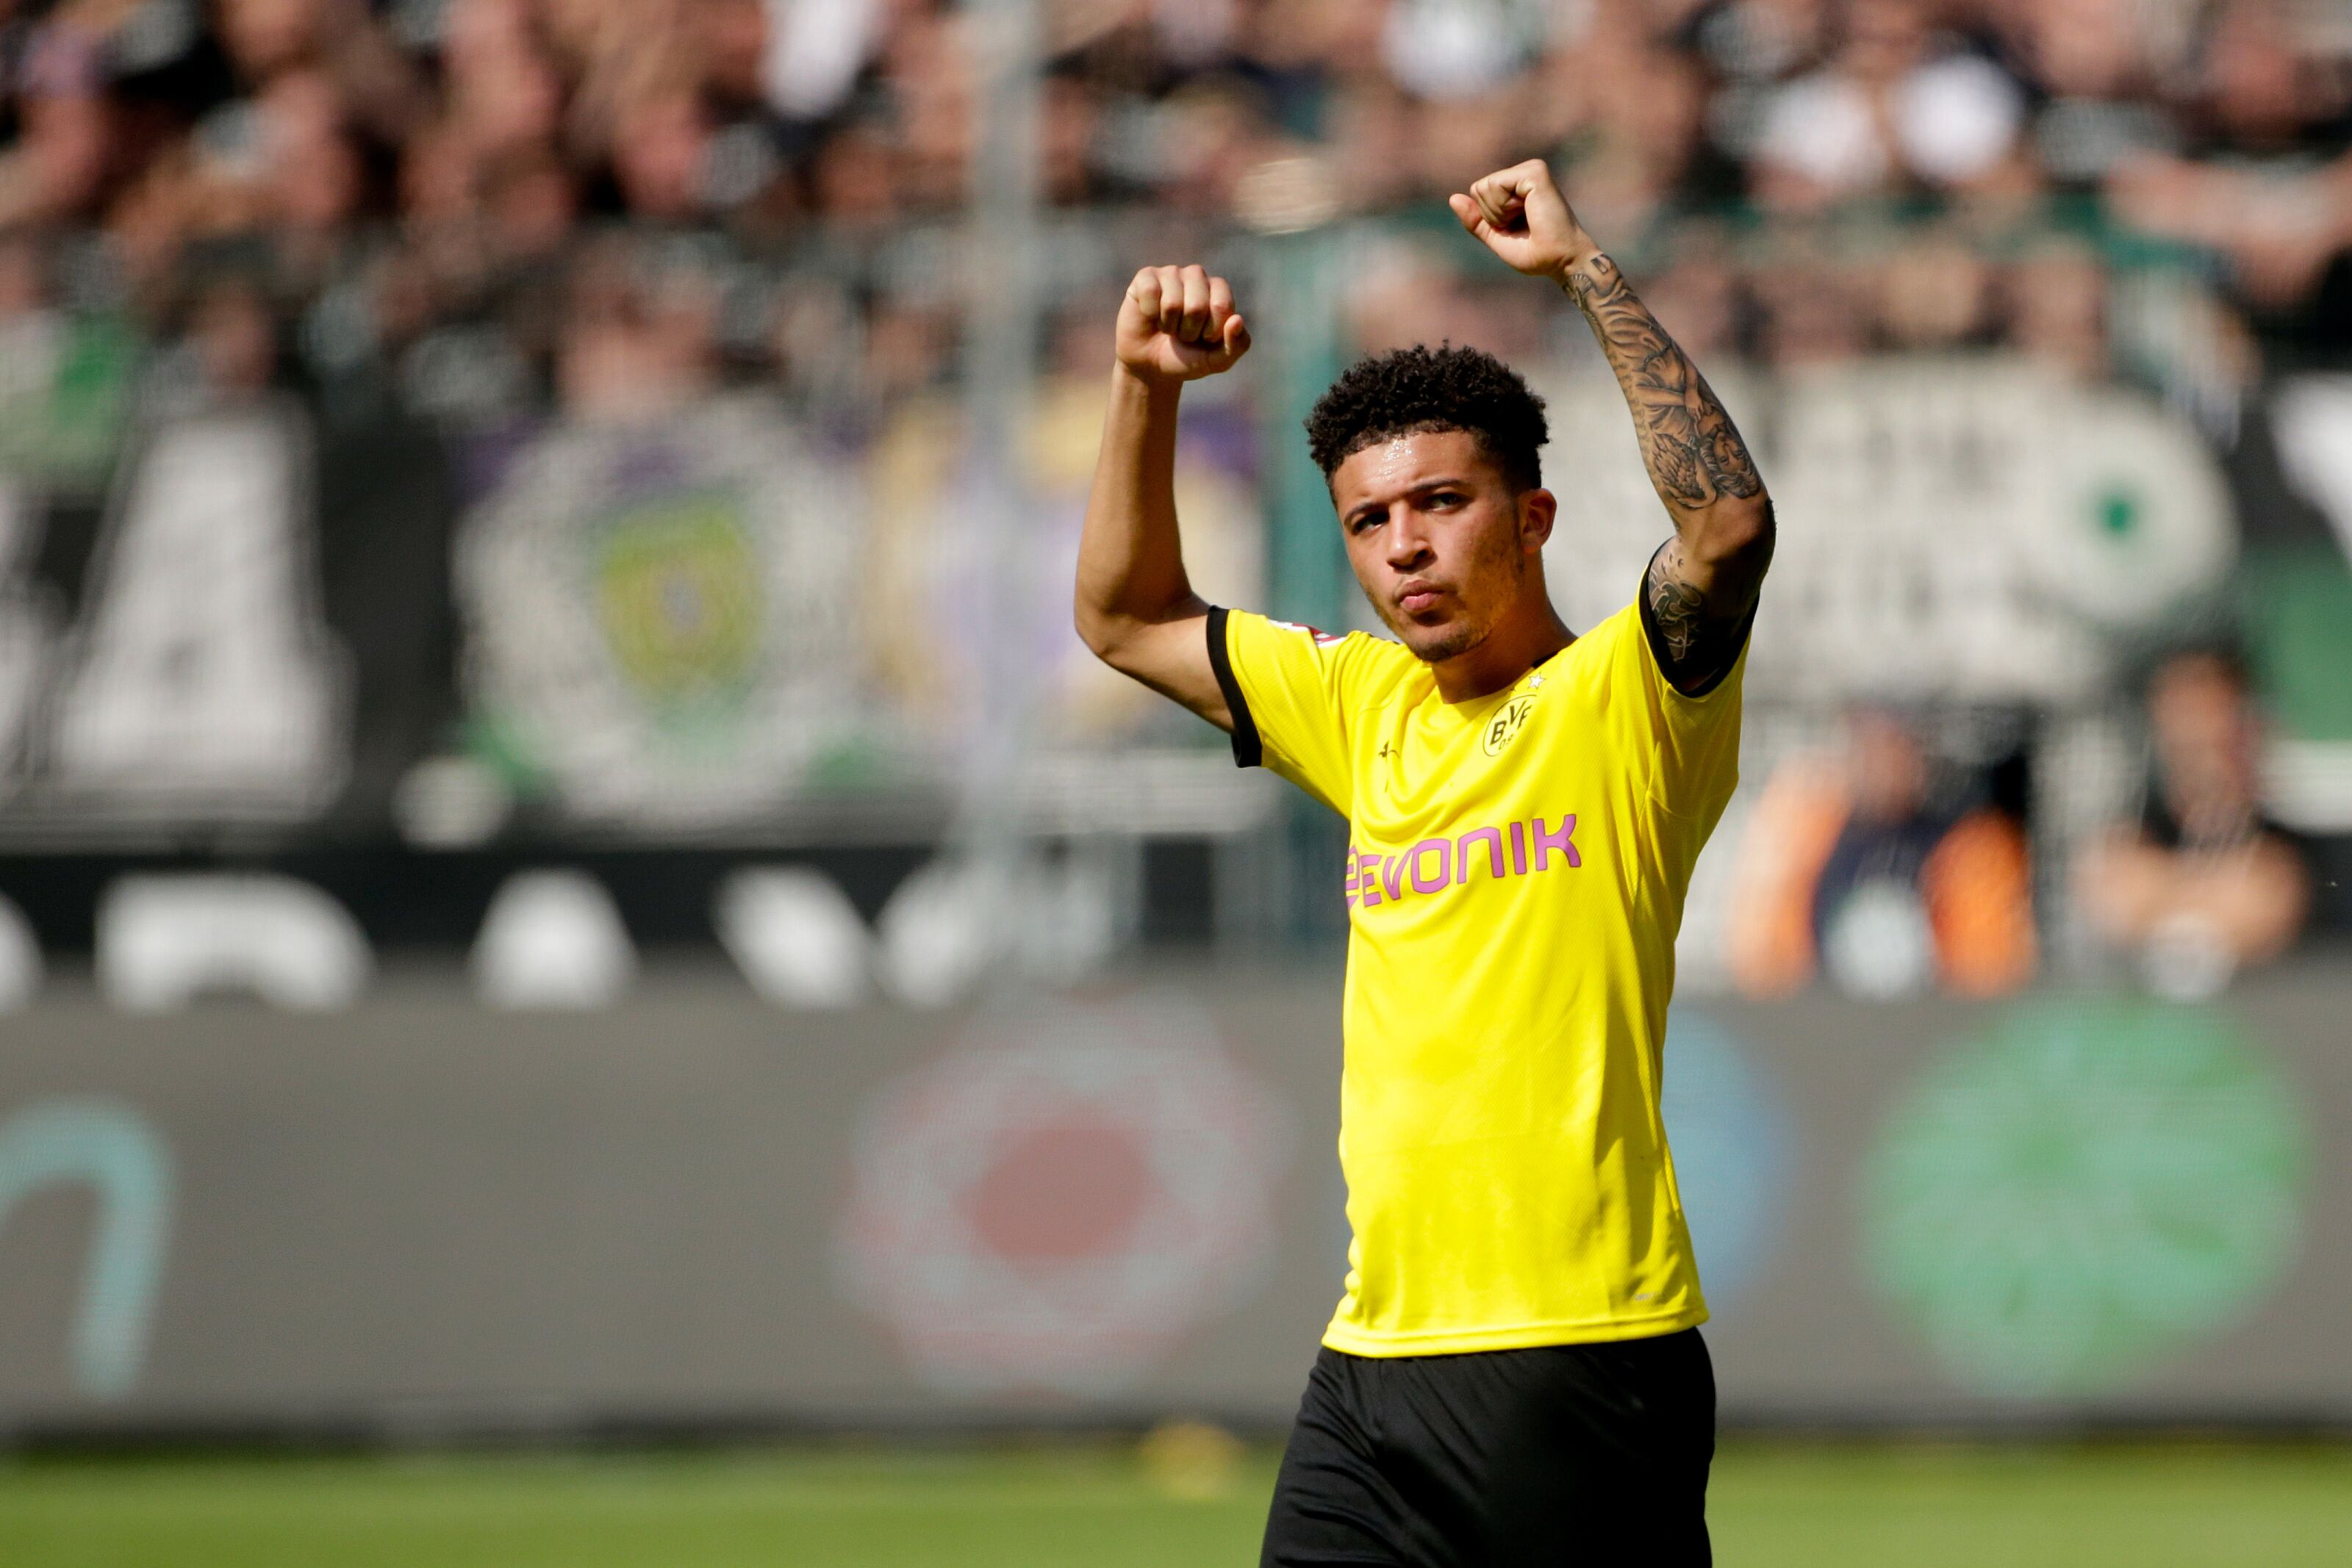 Jadon Sancho sets his sights on winning the Bundesliga title with Borussia Dortmund next season